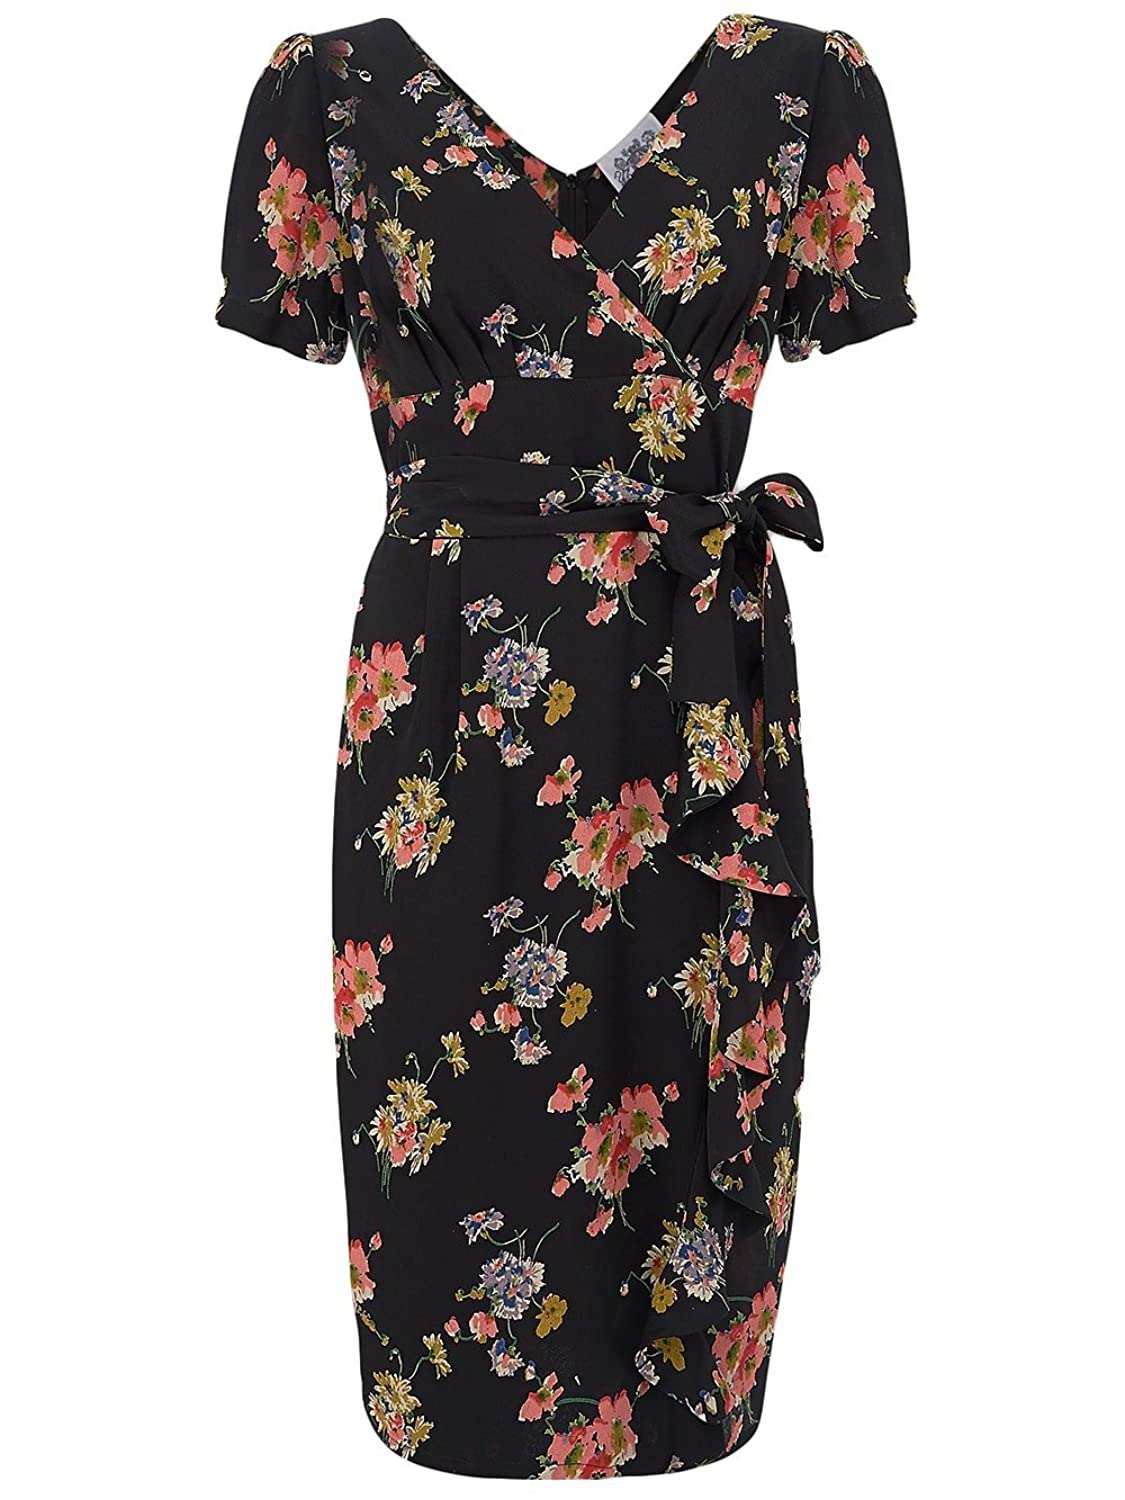 1940's Authentic Vintage Inspired 'Lilian' Dress in Mayflower Print